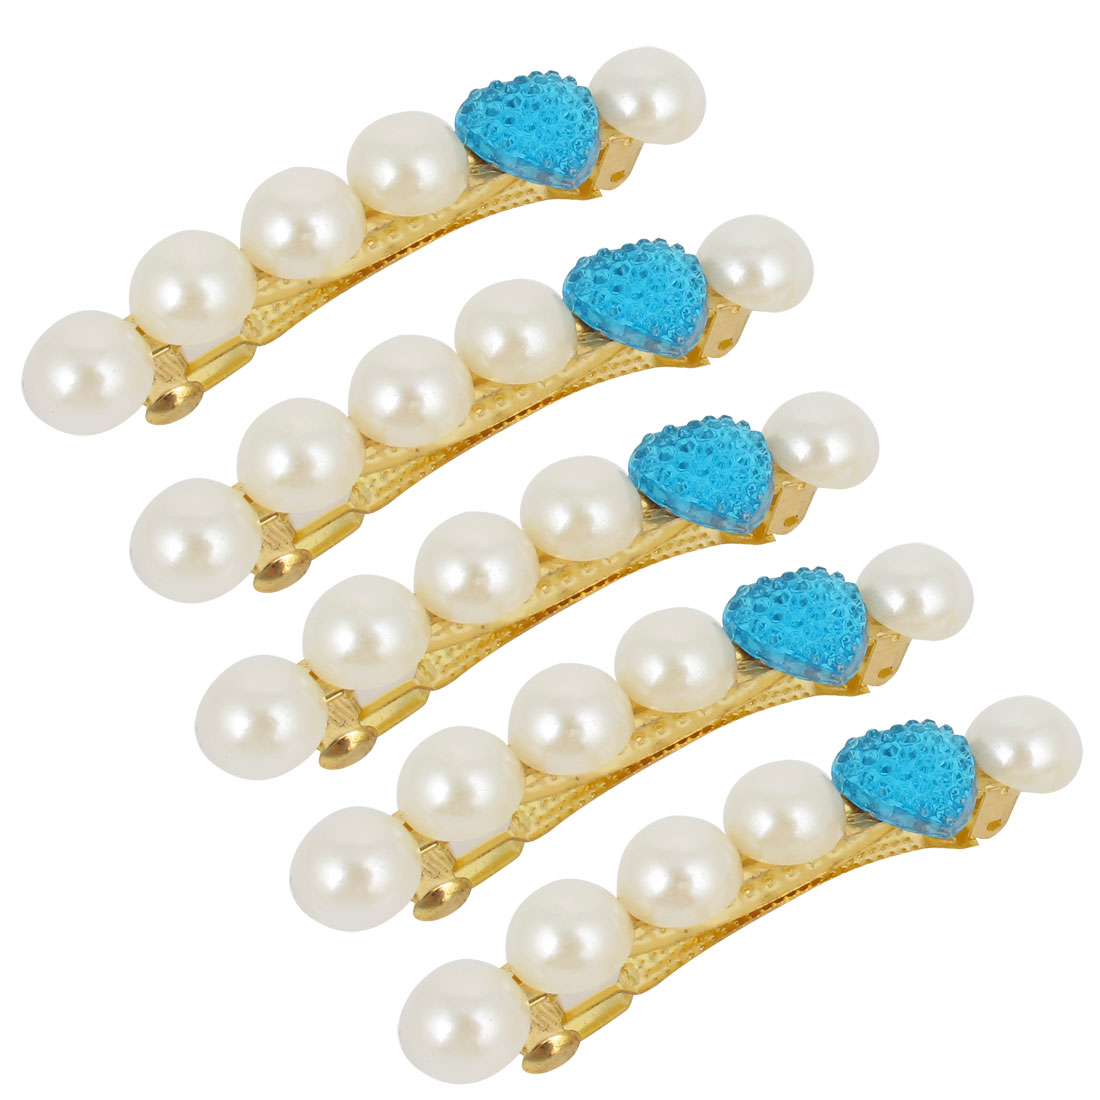 5 Pcs Faceted Plastic Beads Inlay Decoration French Clip Barrette for Women